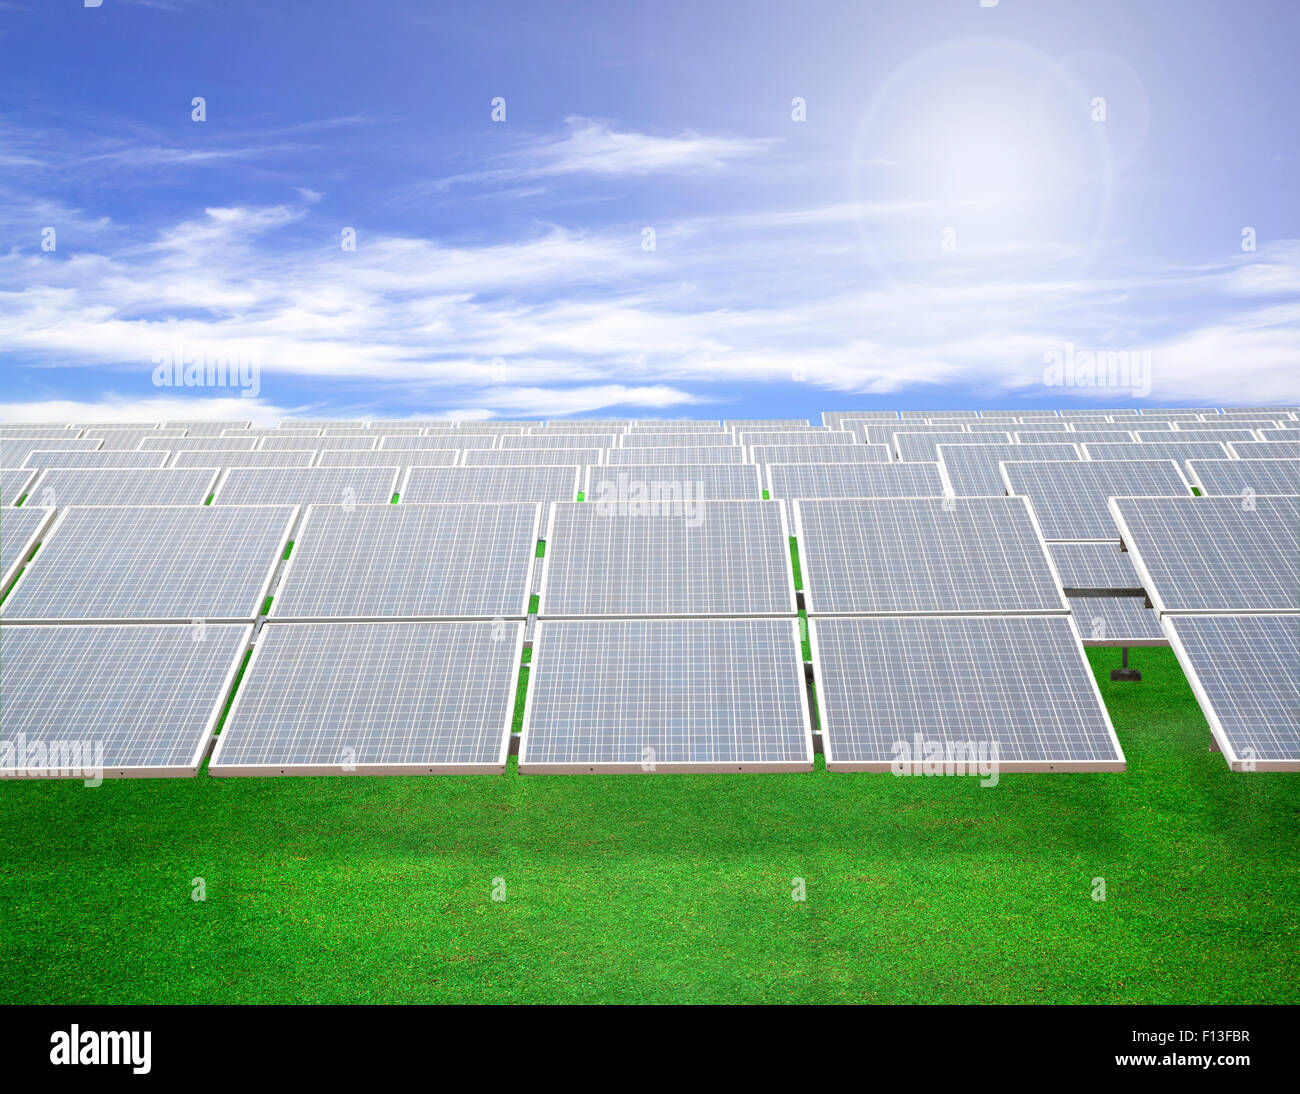 Solar Cells for electricity production Natural energy - Stock Image